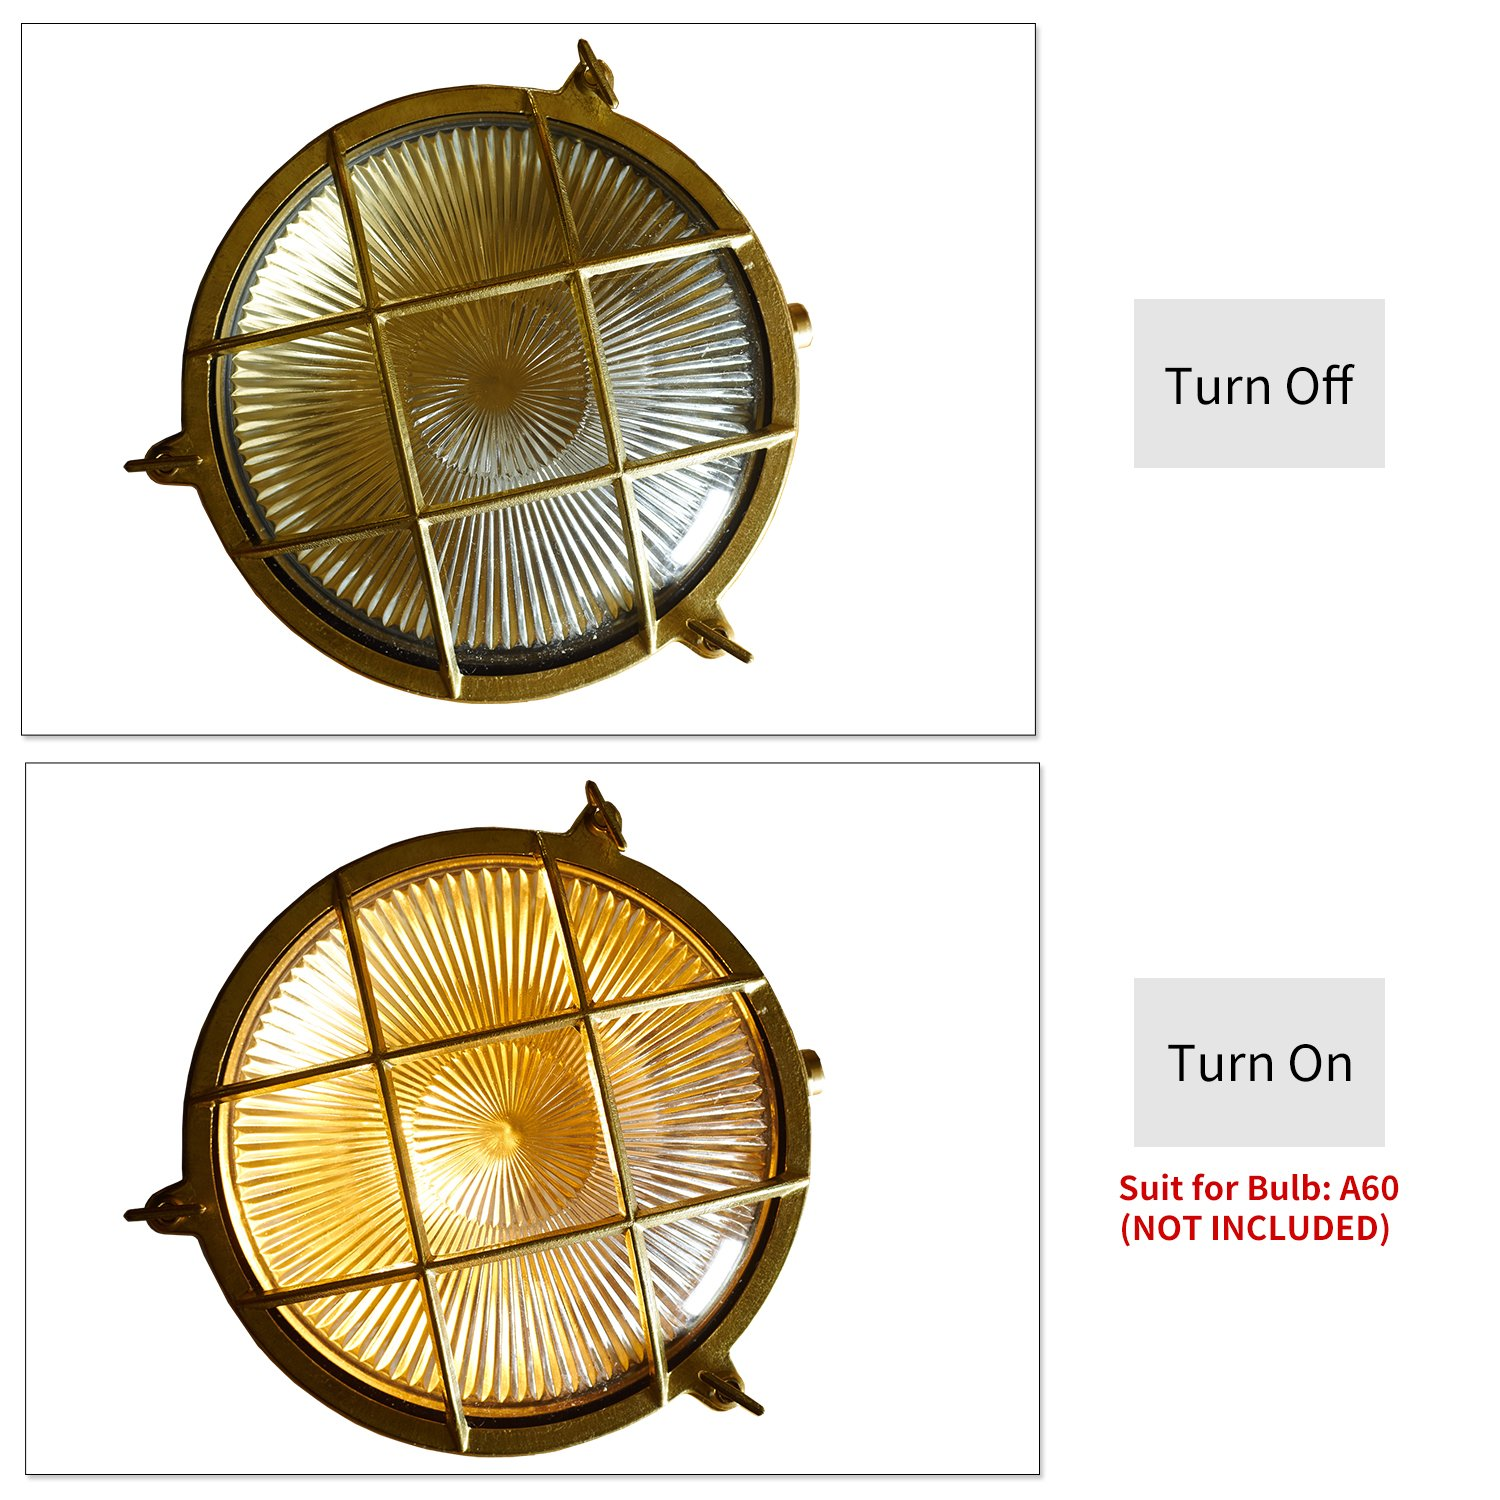 Wolink 8.5inch Wide Brass Nautical Bulkhead Lamp Fixtures,Polished Brass Outdoor Antique Wall Light